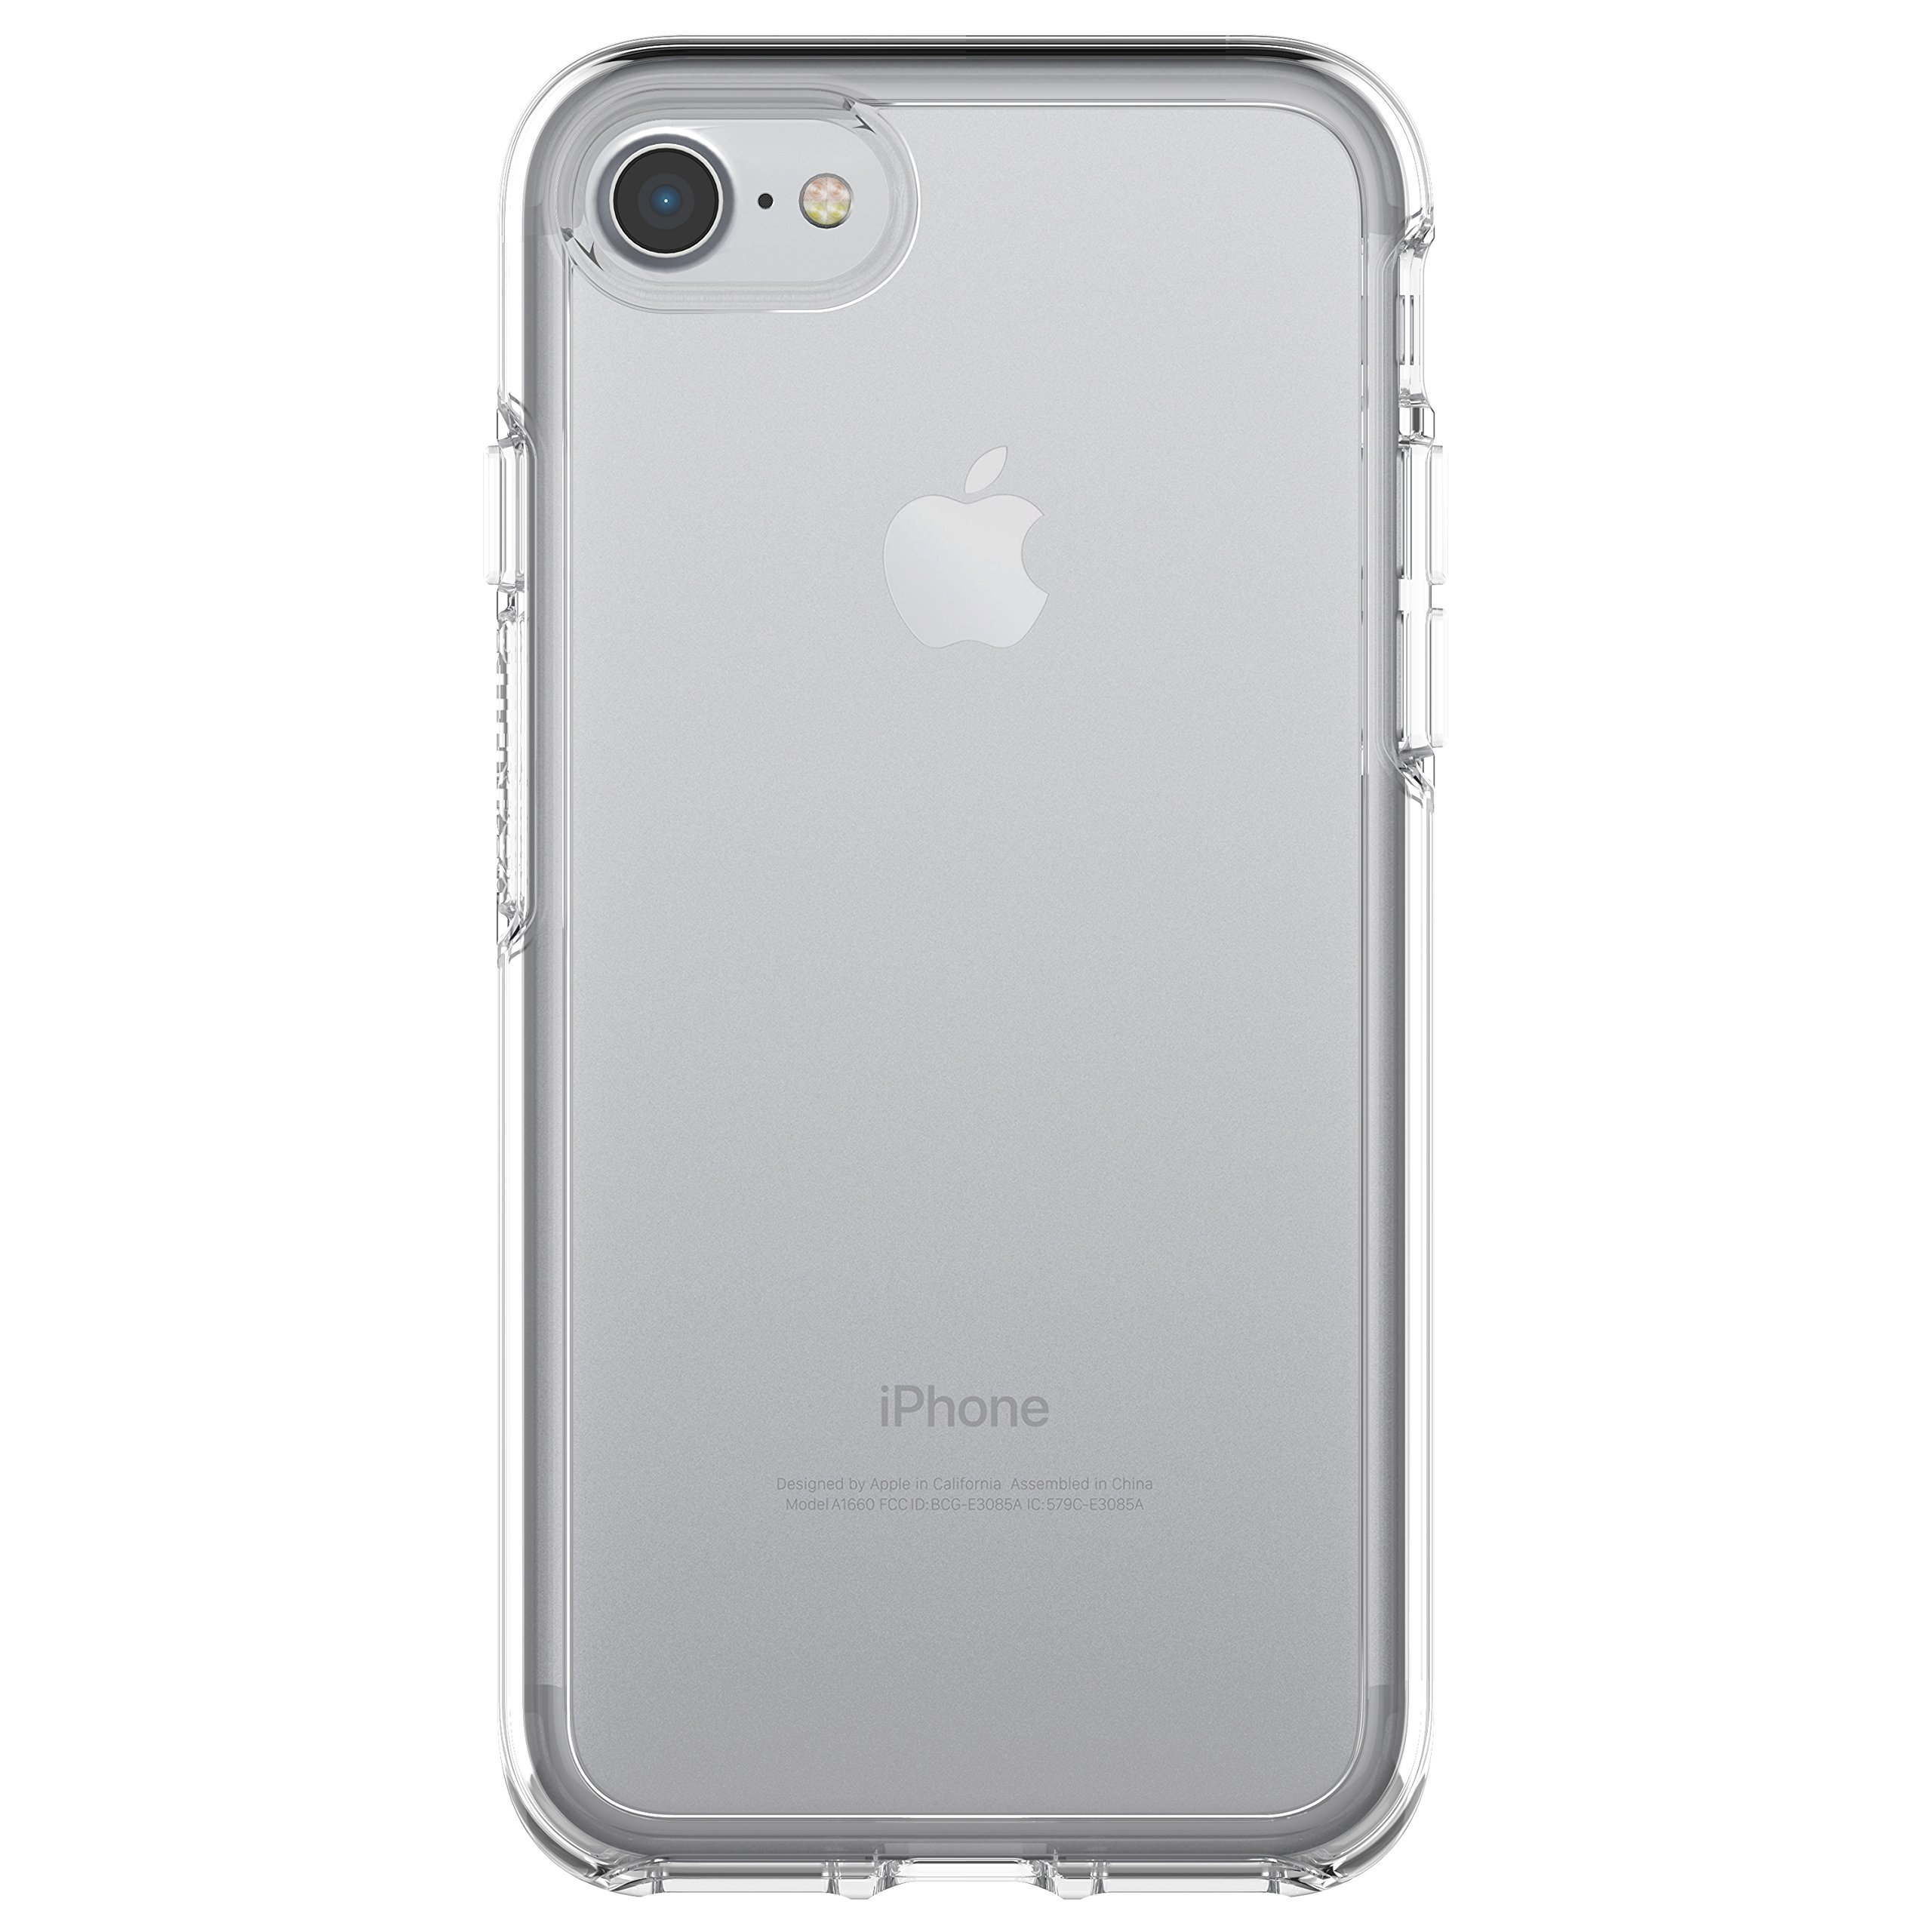 OtterBox SYMMETRY CLEAR SERIES Case for iPhone 8/7 (ONLY) - Retail Packaging - CLEAR (CLEAR/CLEAR) by OtterBox (Image #1)